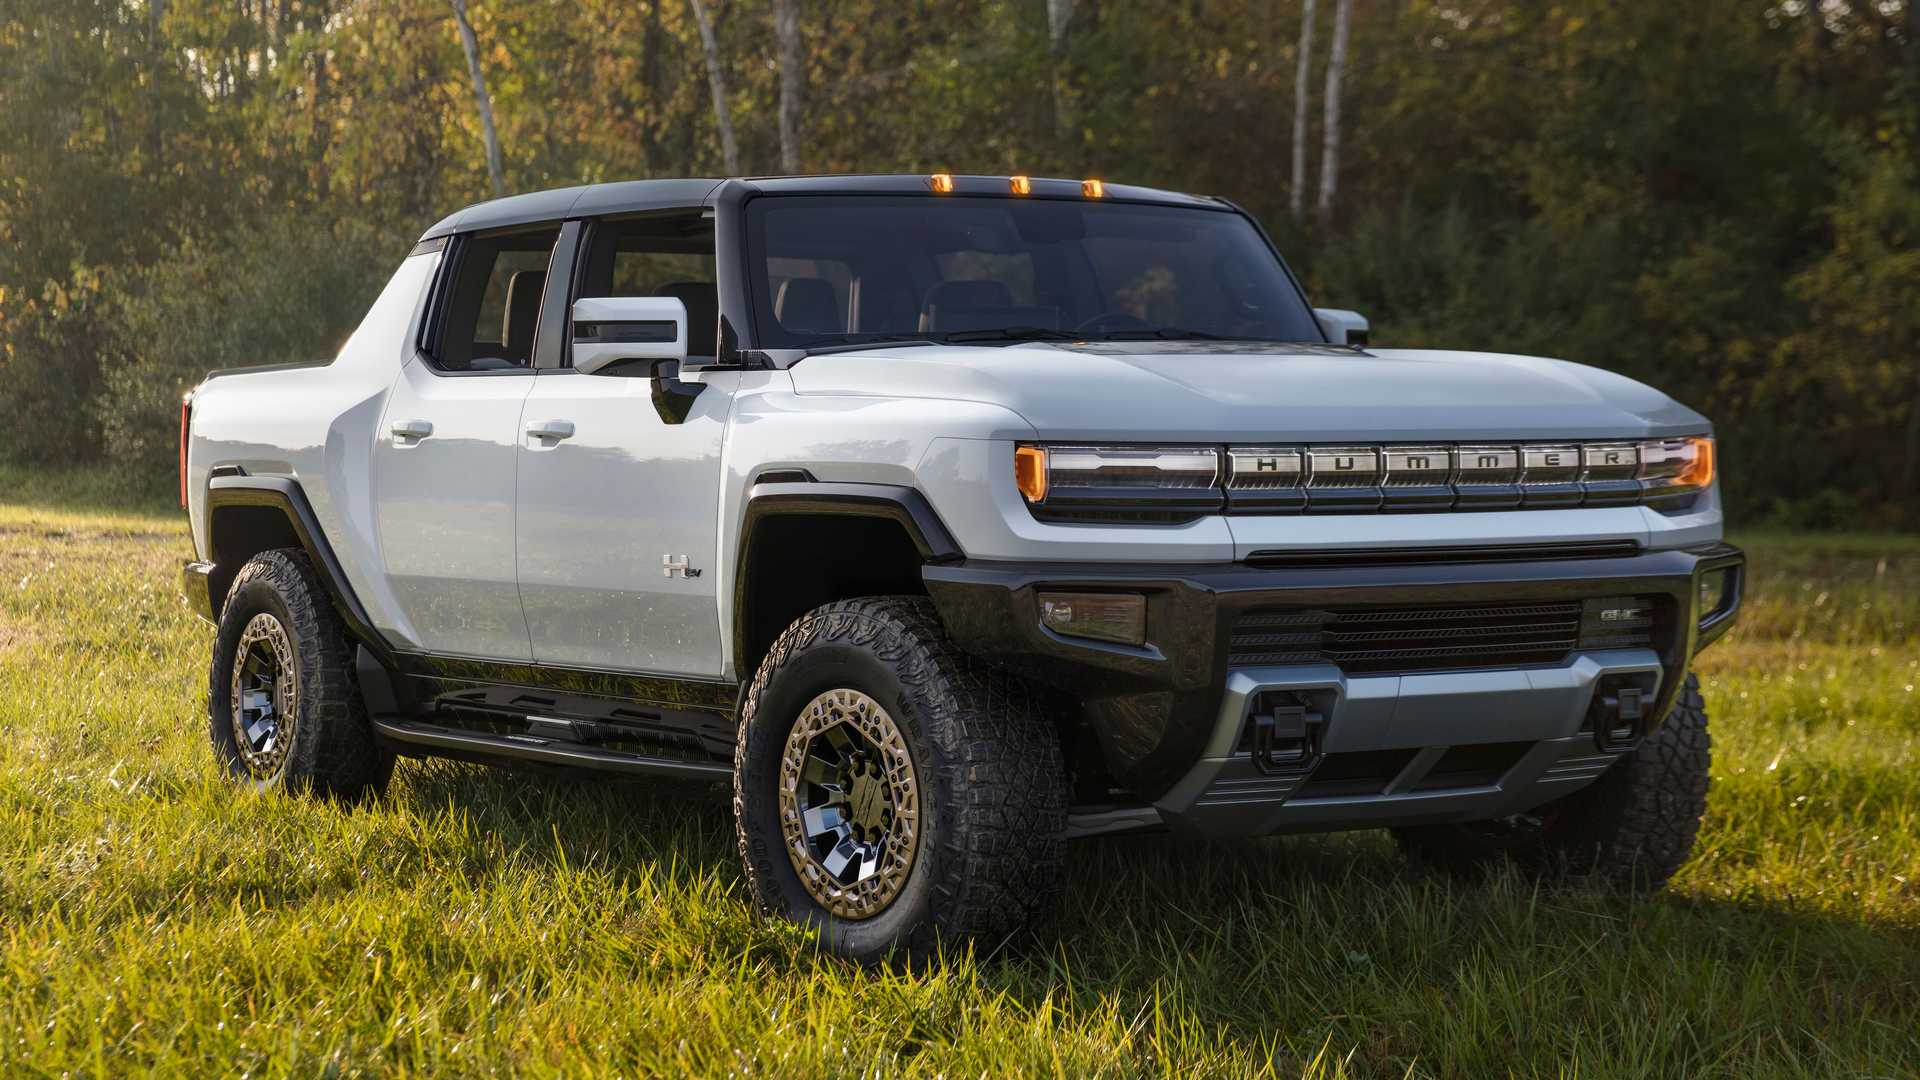 GMC Hummer EV SUV Going On Sale For $105,595 In 2023